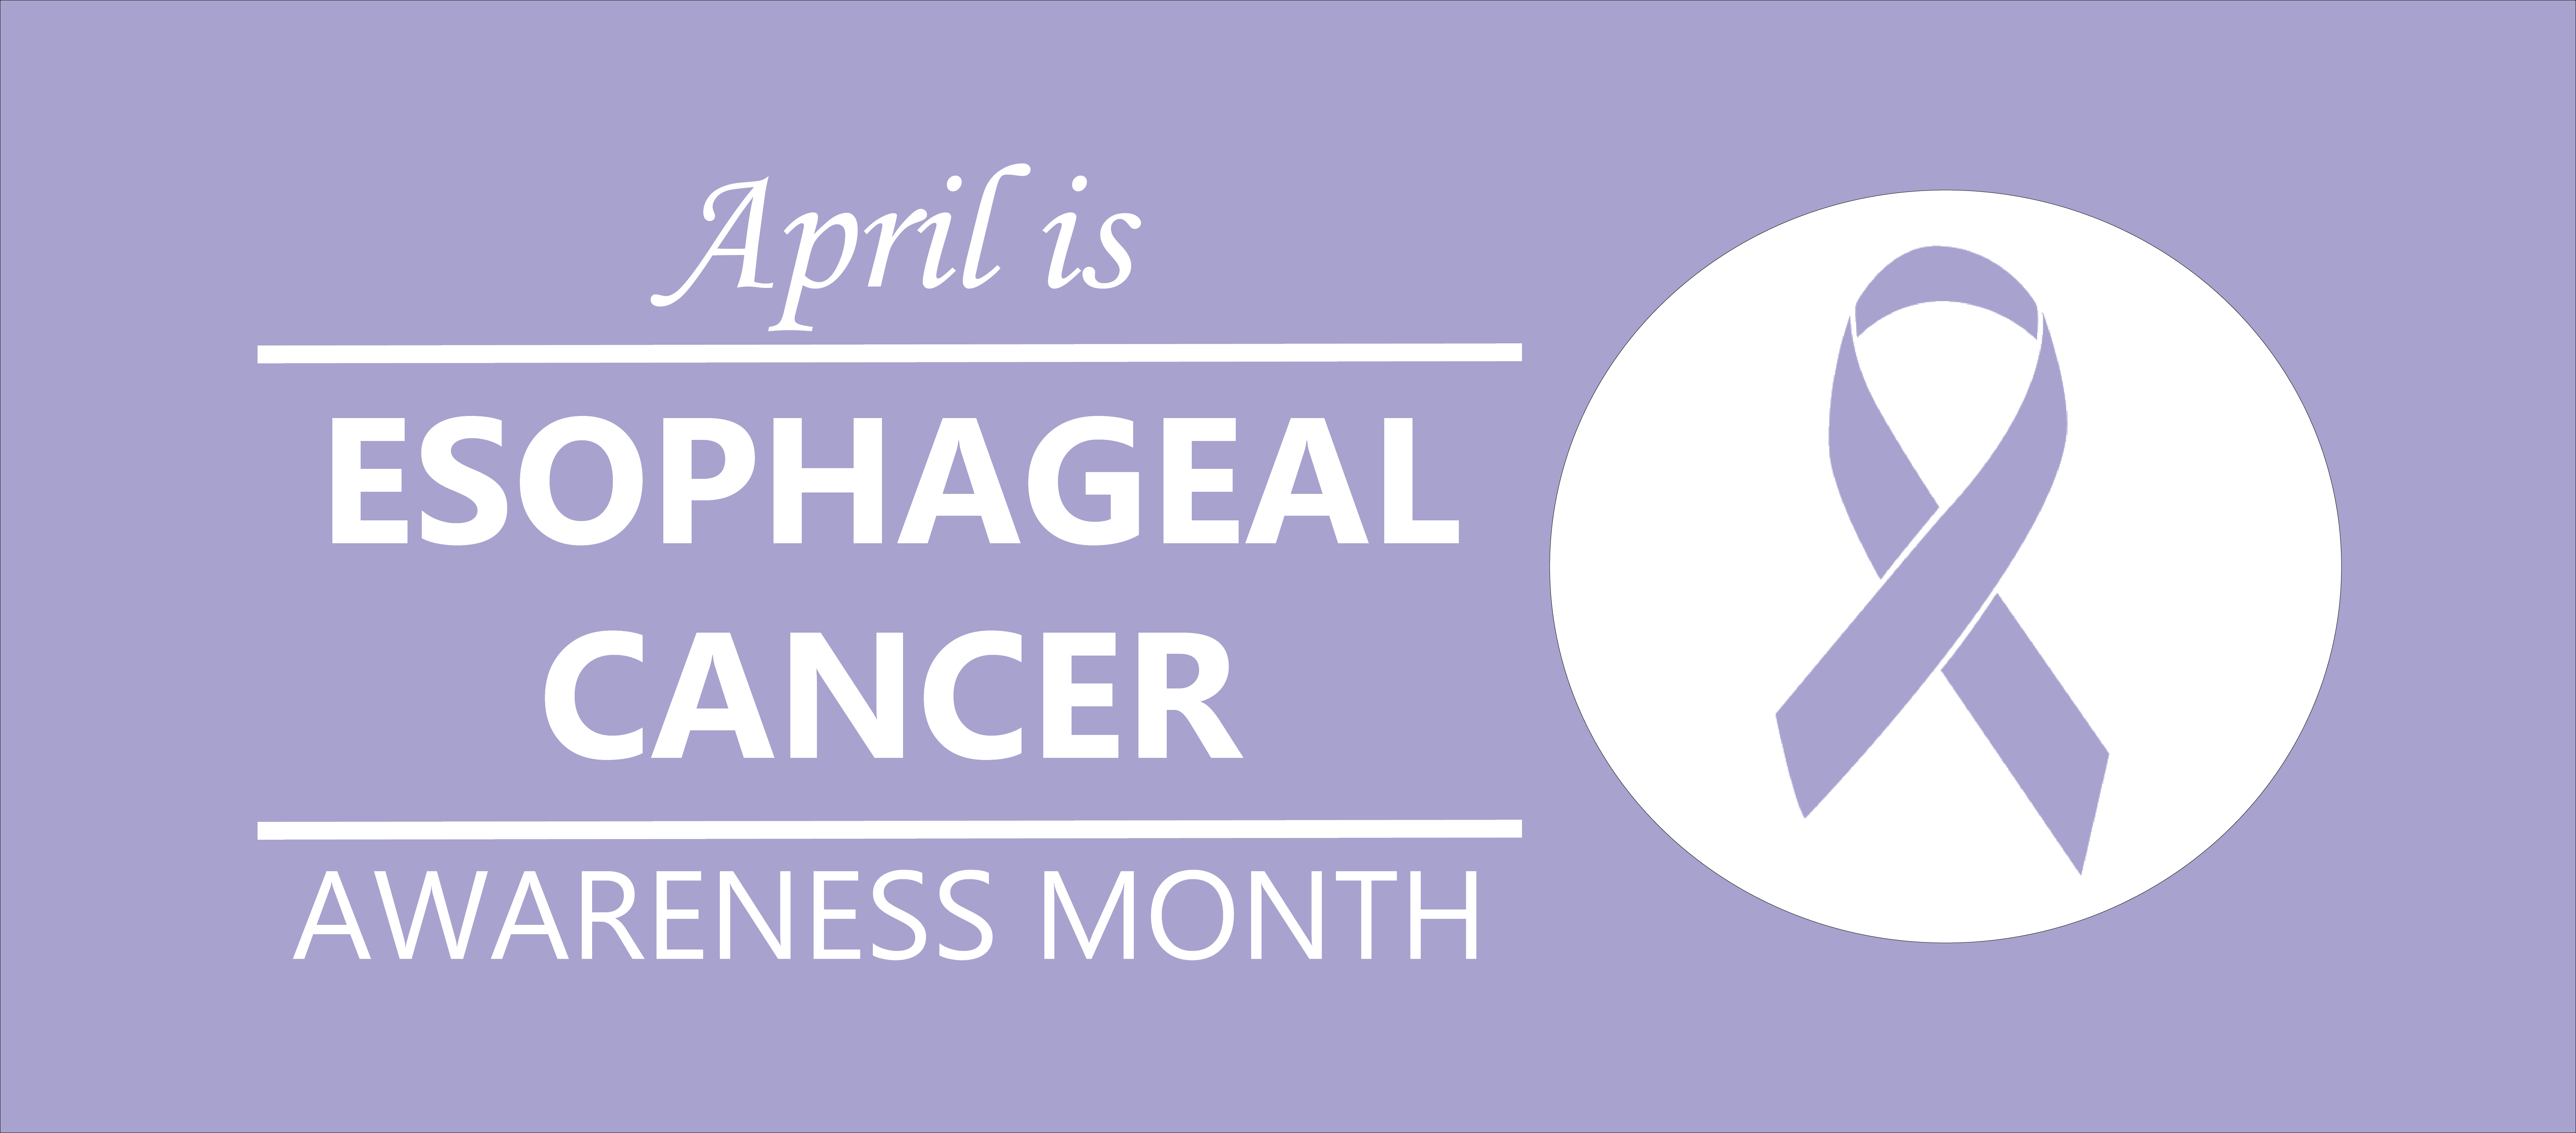 Esophageal Cancer Awareness Month